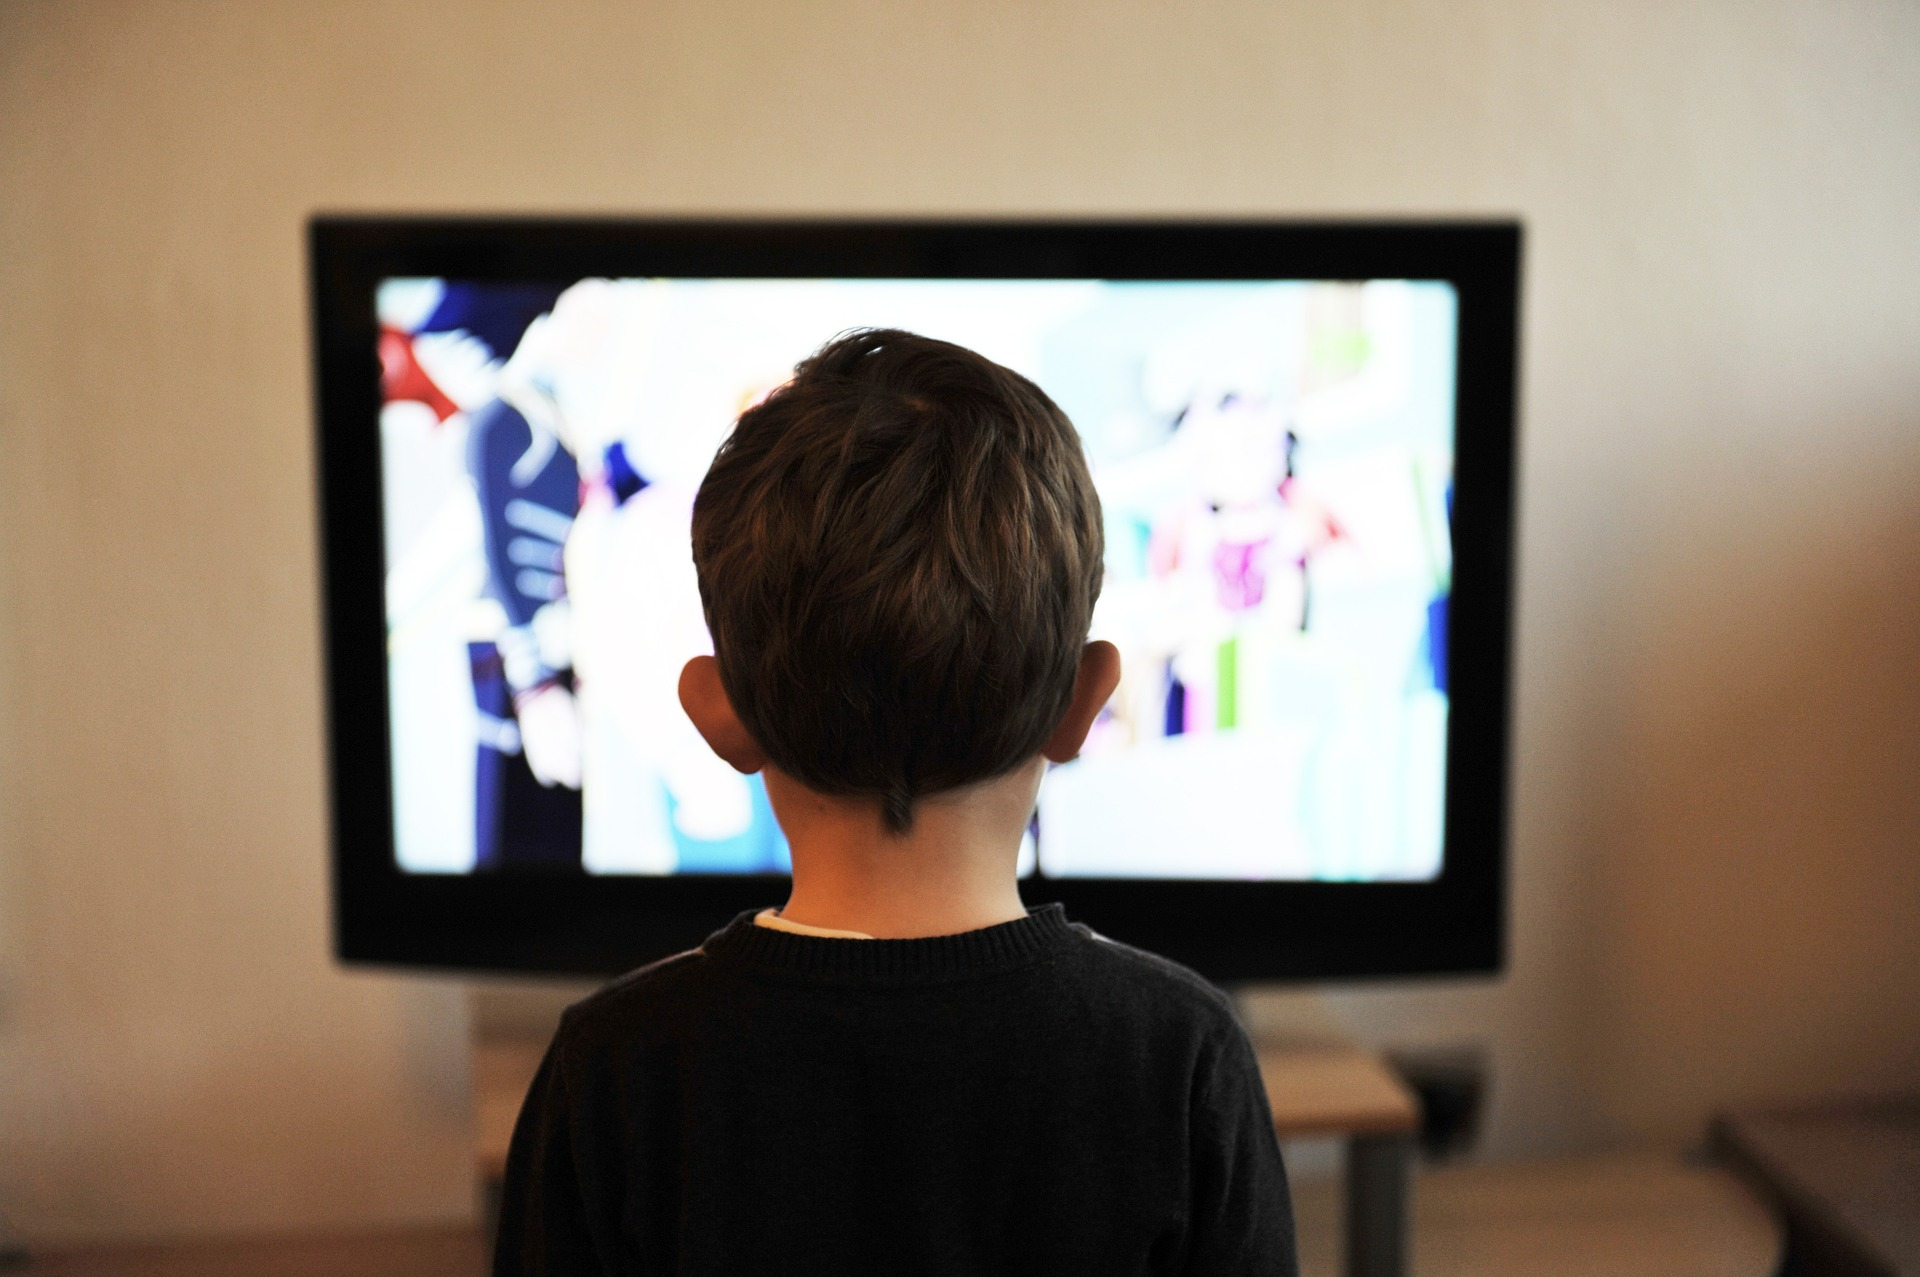 Young children are spending more time than ever looking at a screen. Going screen free can help children improve their connection to the family, their understanding of the natural world, and improve their health and mental wellbeing.